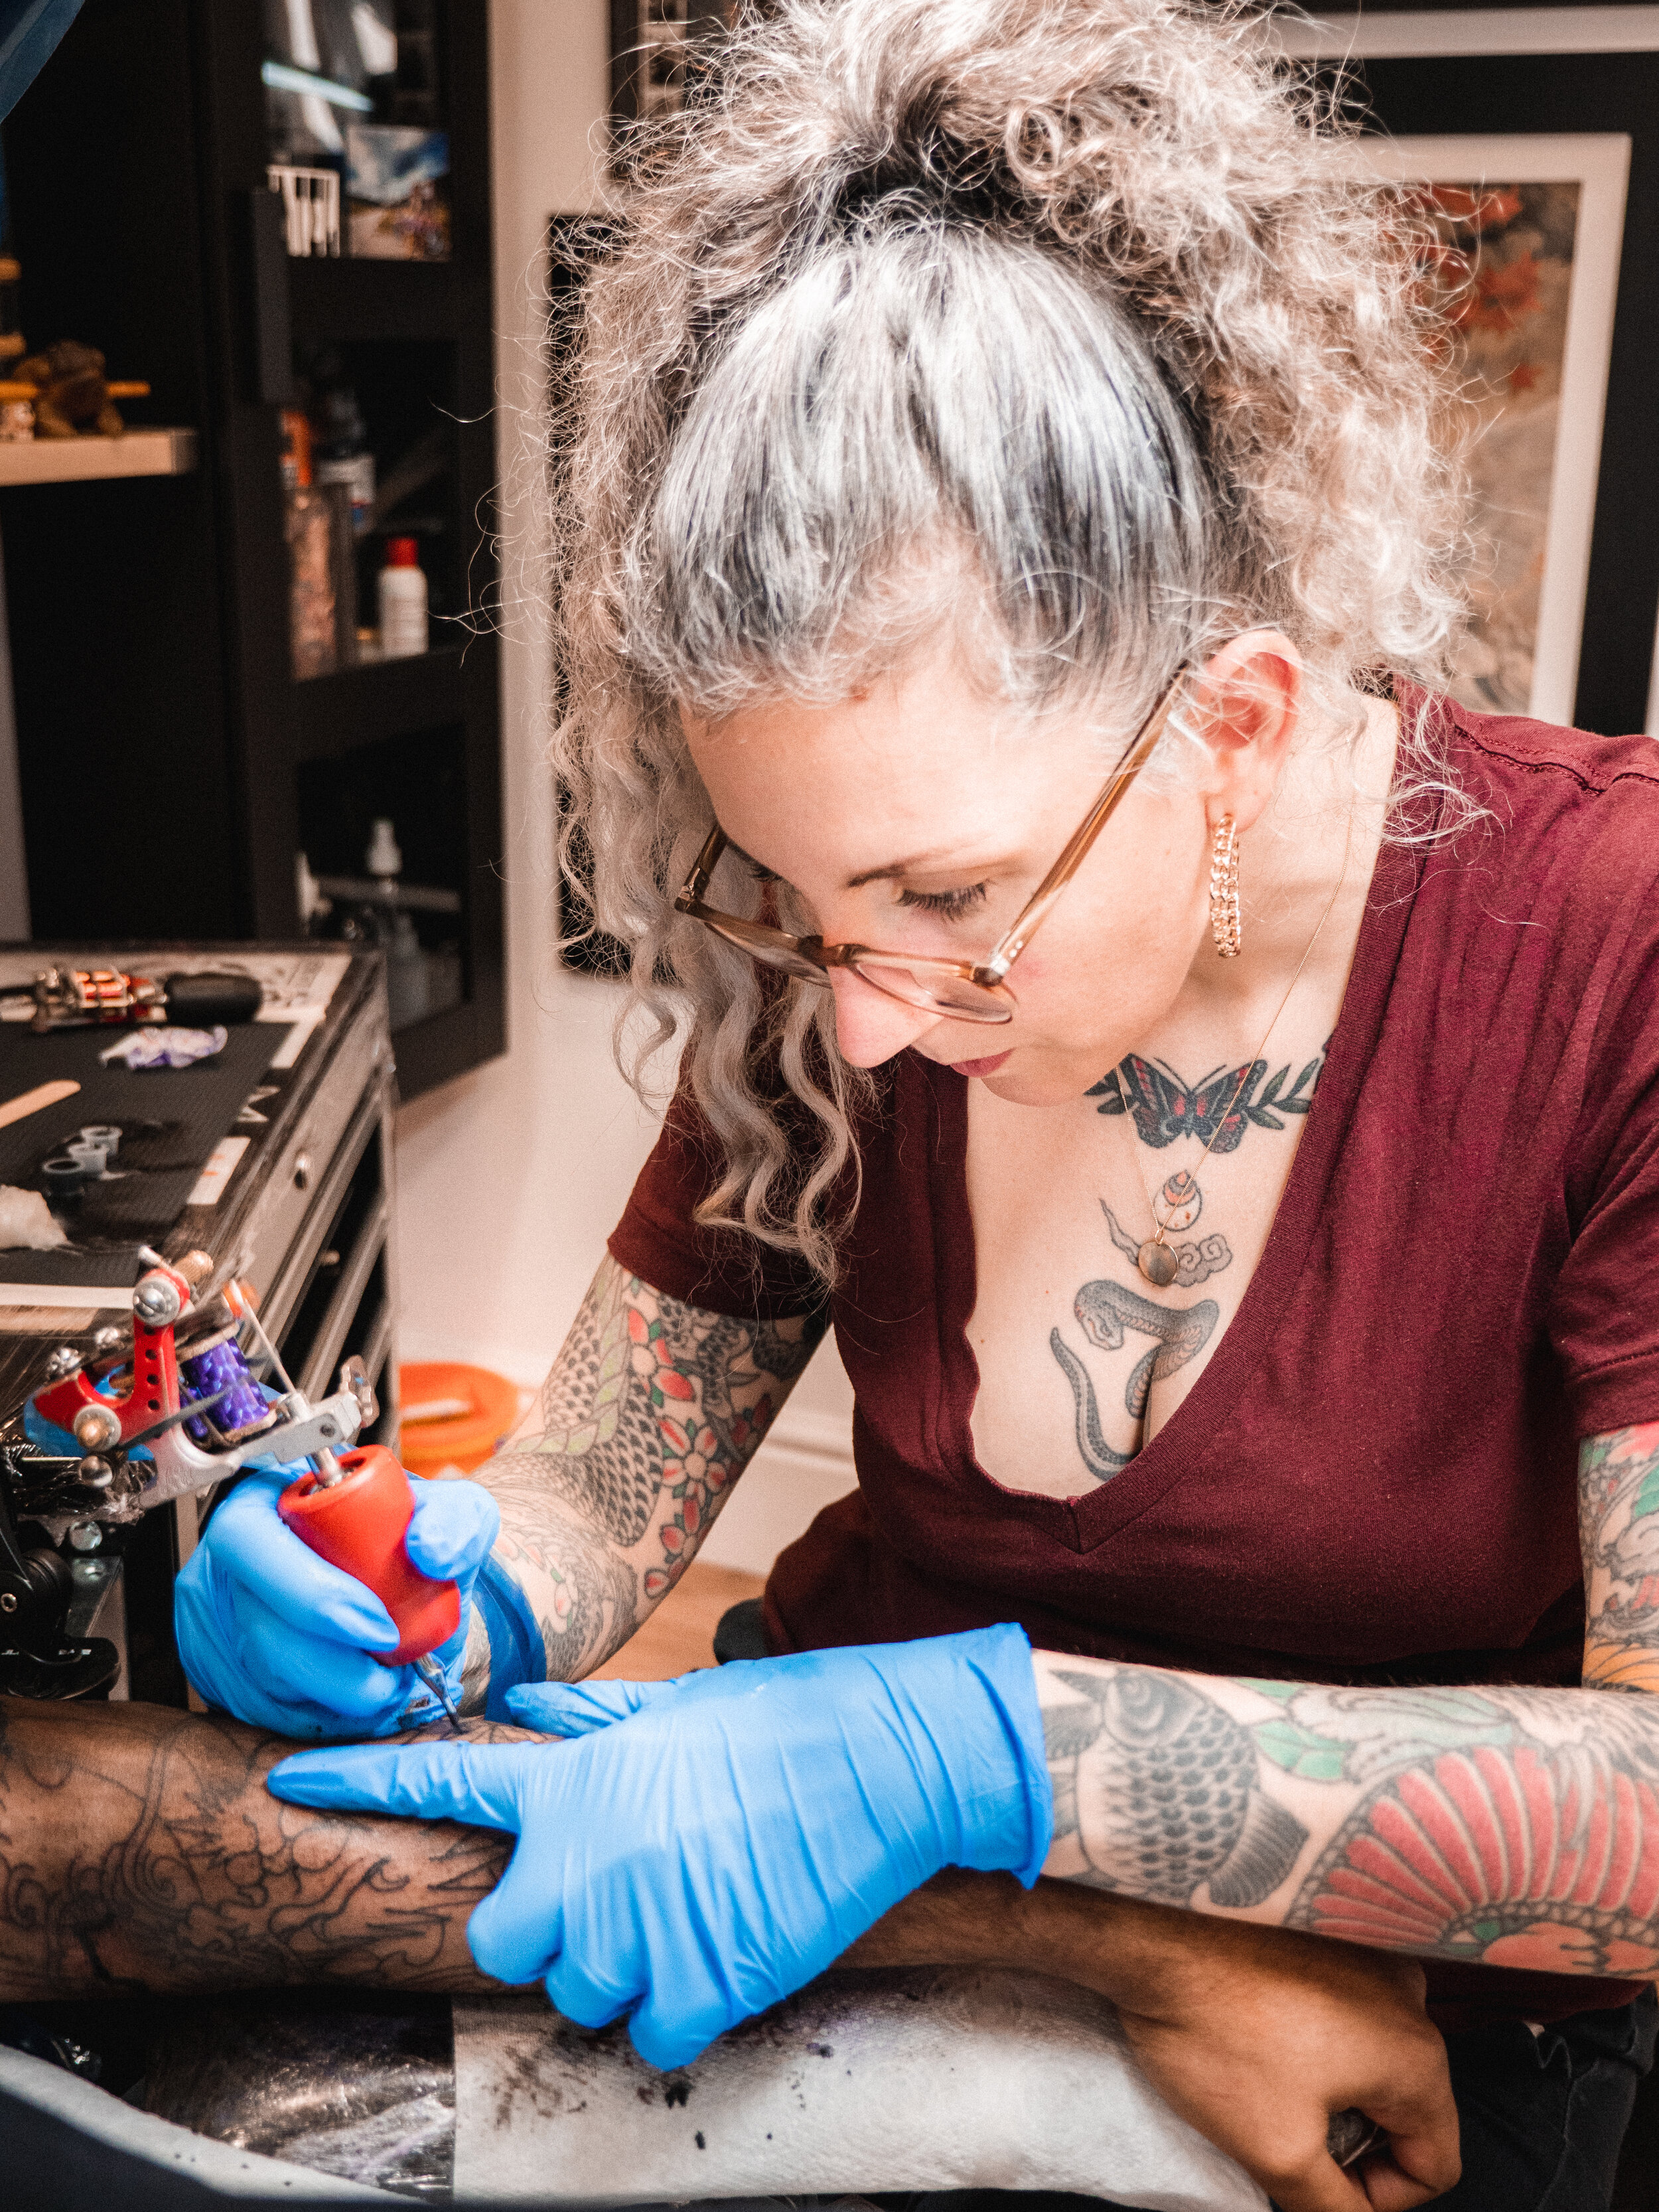 - Claudia De Sabe has been tattooing since 2004, and describes her style as 'Western Traditional meets Japanese'Follow Claudia on Instagram